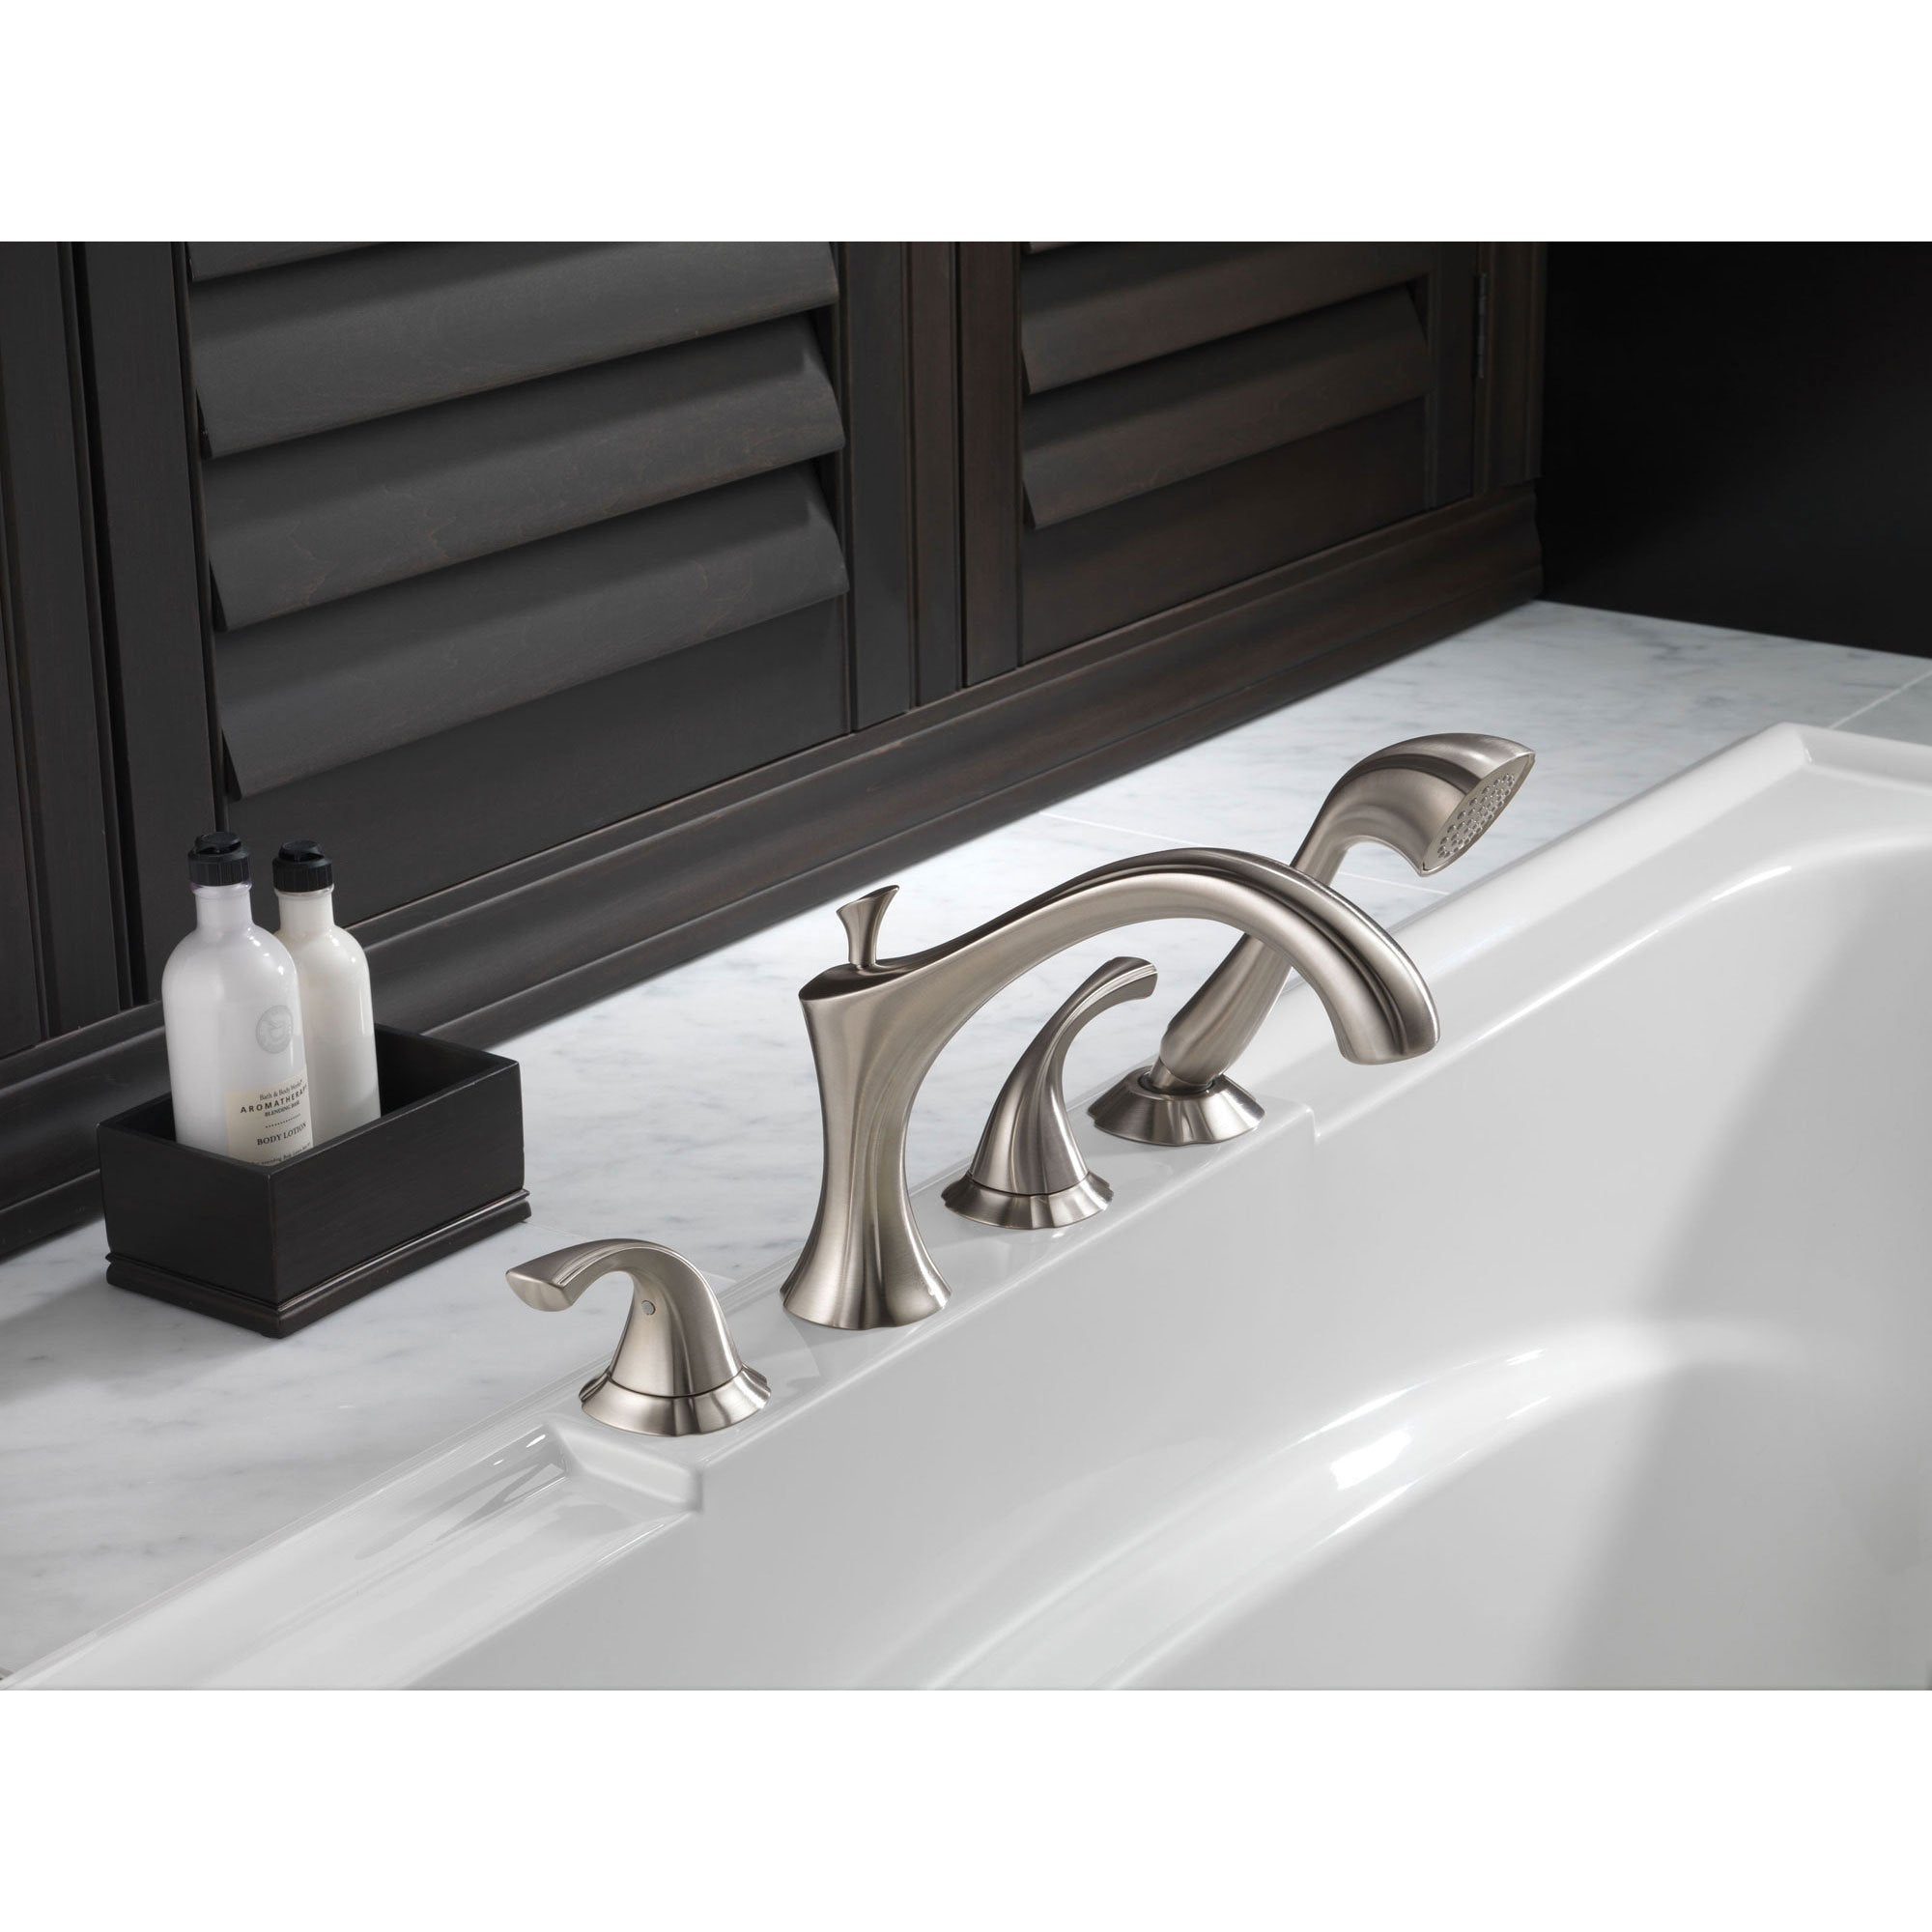 Delta Addison Stainless Steel Finish Roman Tub Faucet with Handspray ...